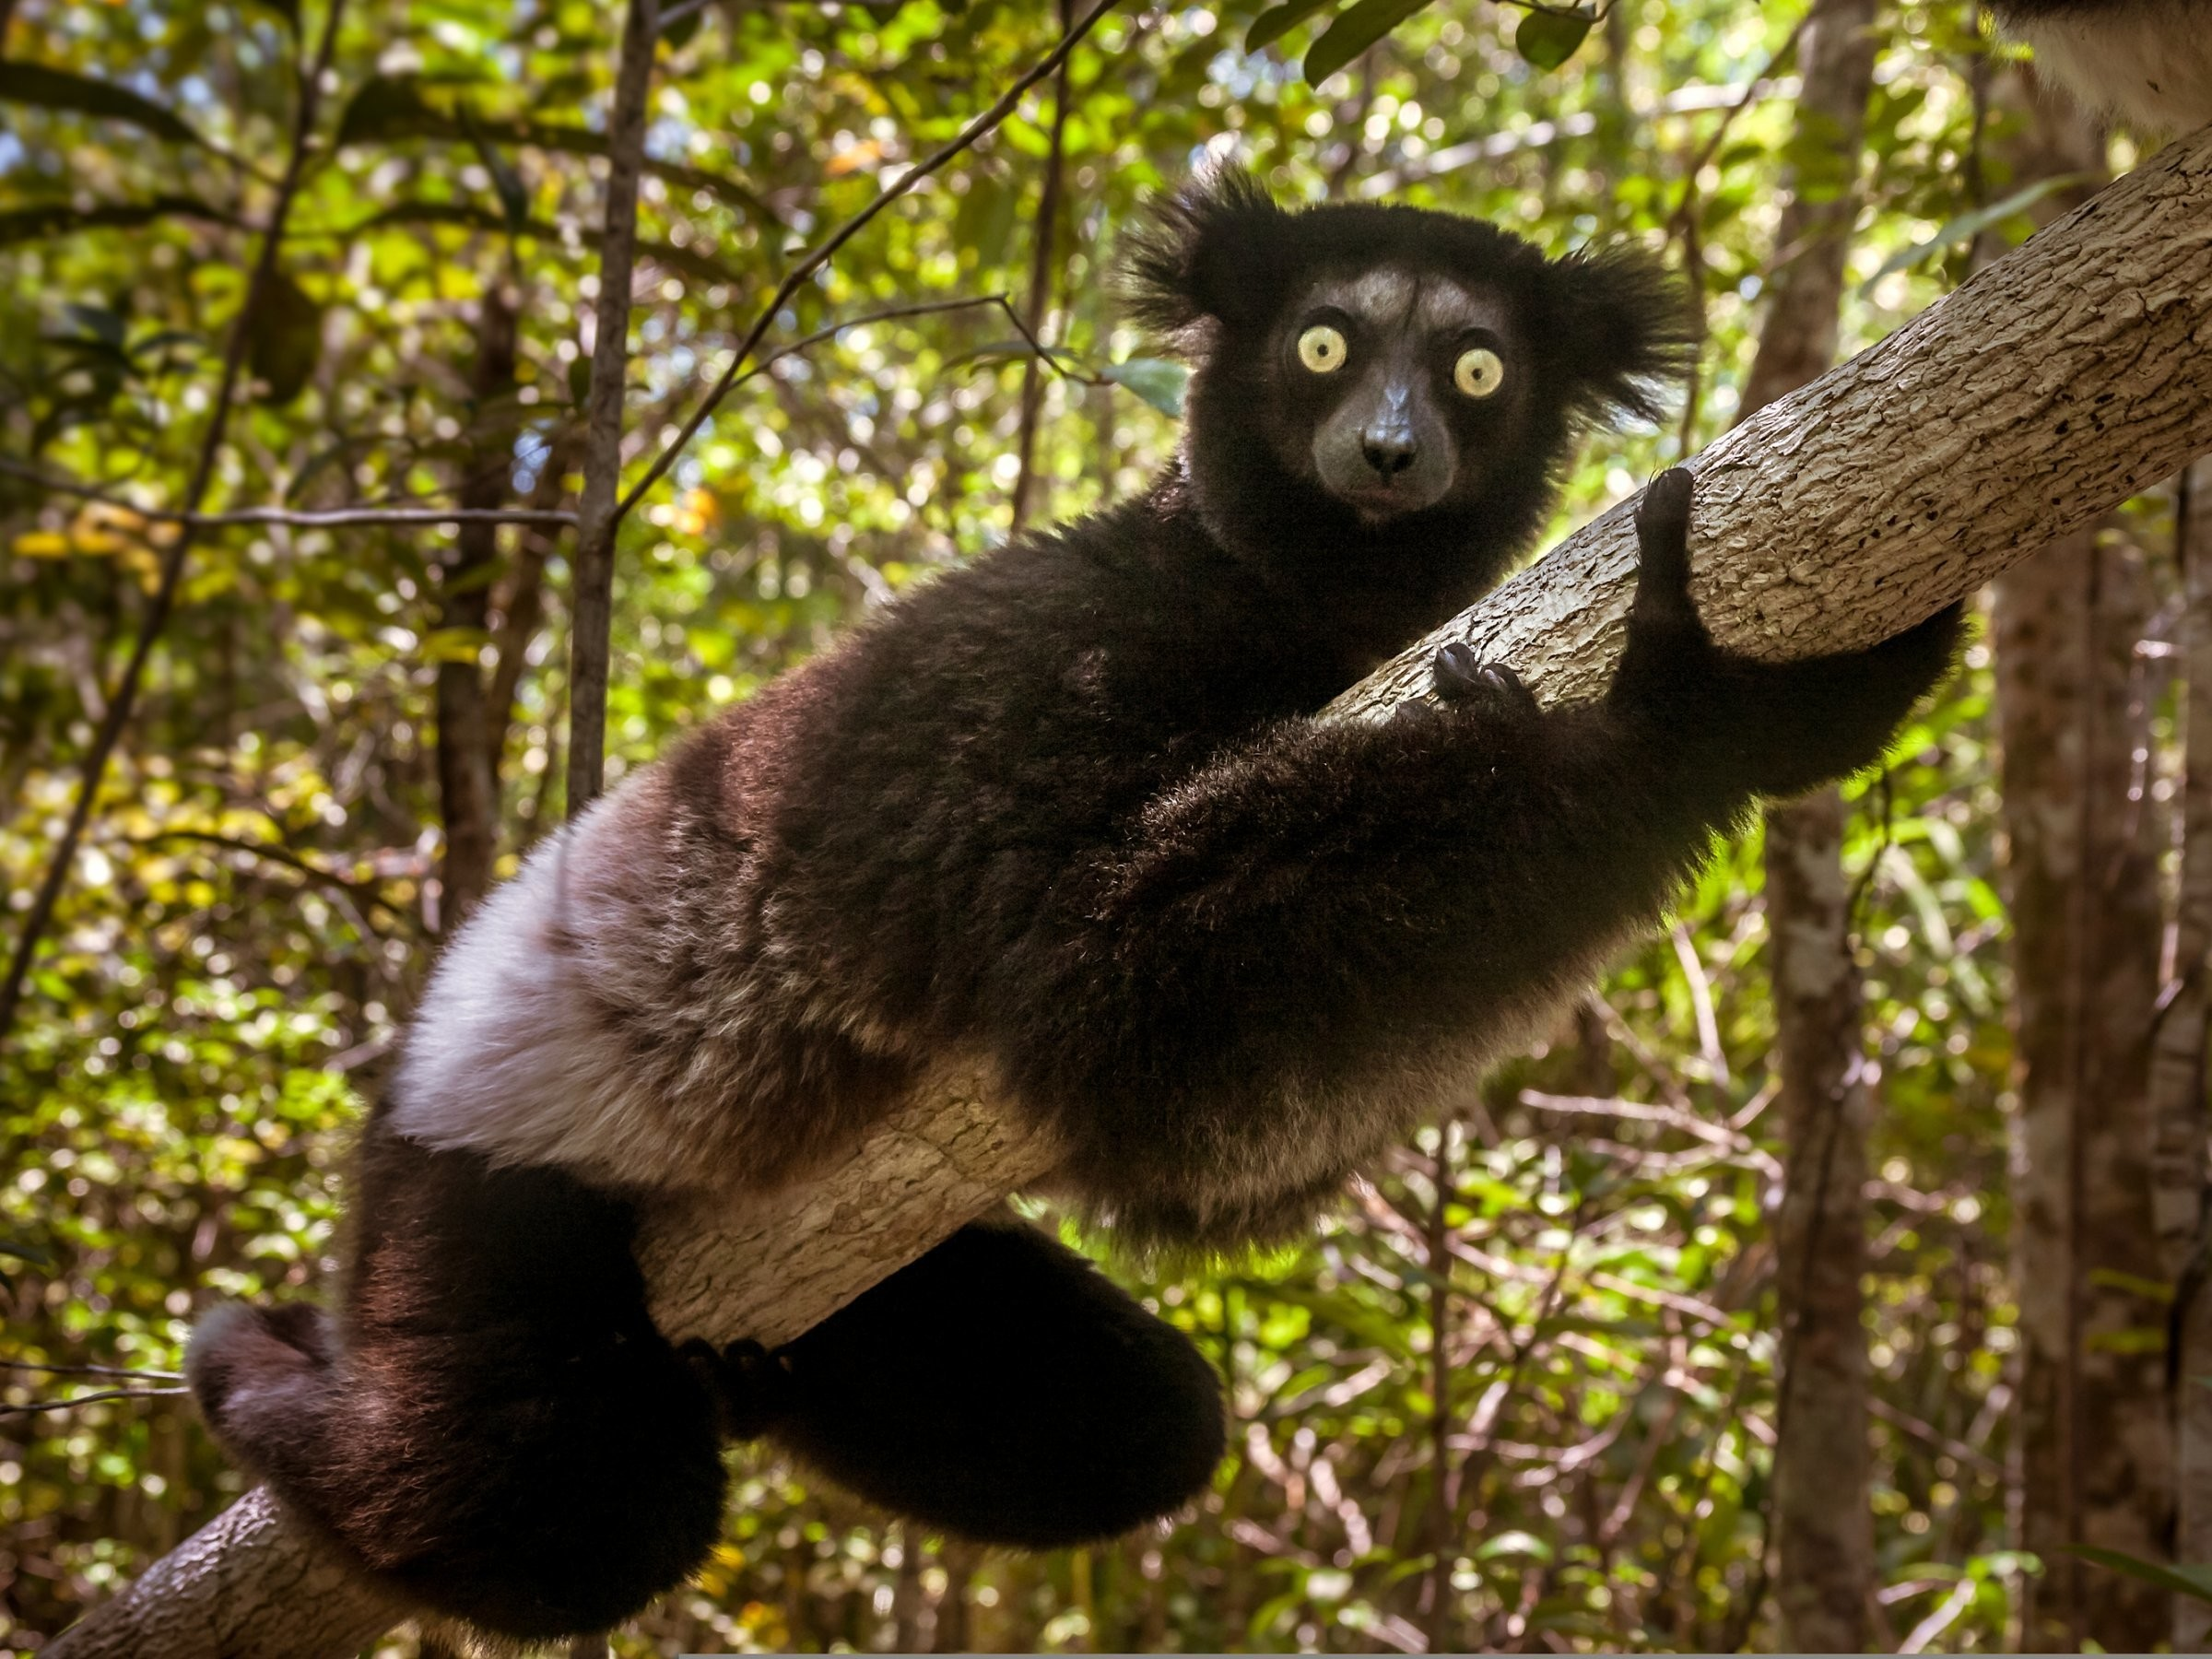 The indri of Madagascar — the largest living lemur — is critically endangered and highly evolutionarily distinct. If the indri goes extinct, we will lose 19 million years of unique evolutionary history.